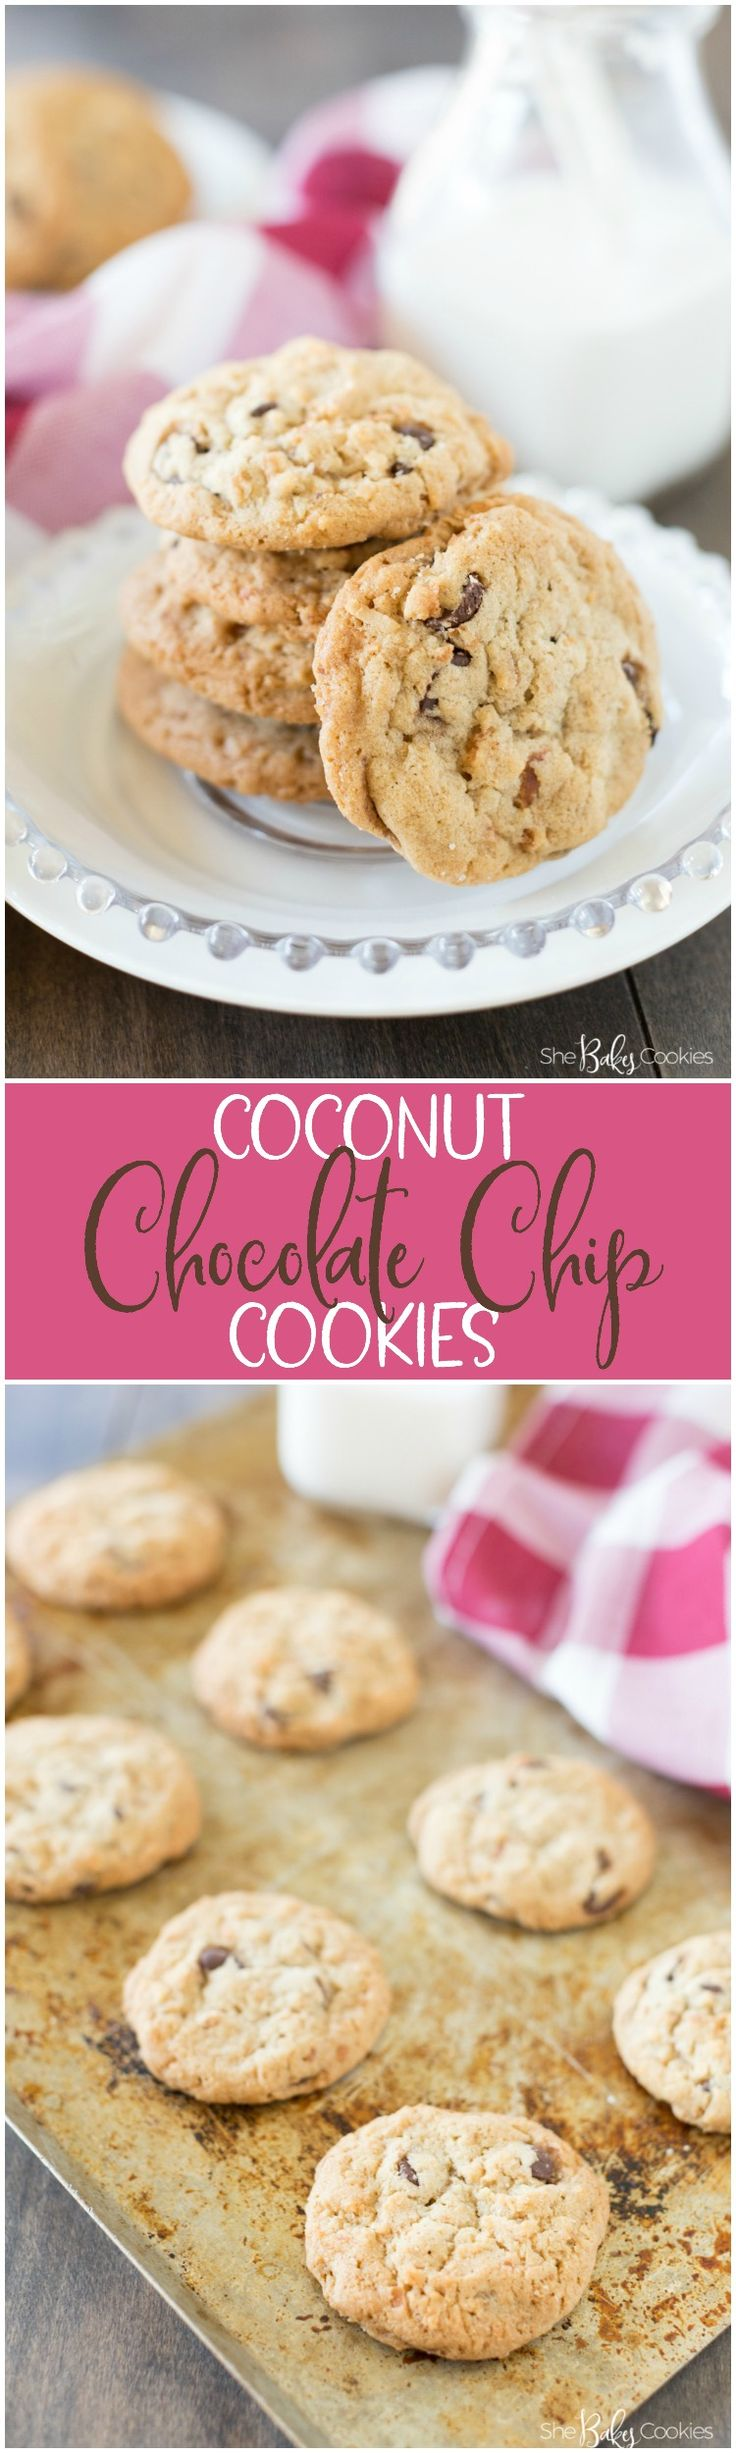 876 best coolies images on Pinterest   Dessert recipes, Cookies and ...